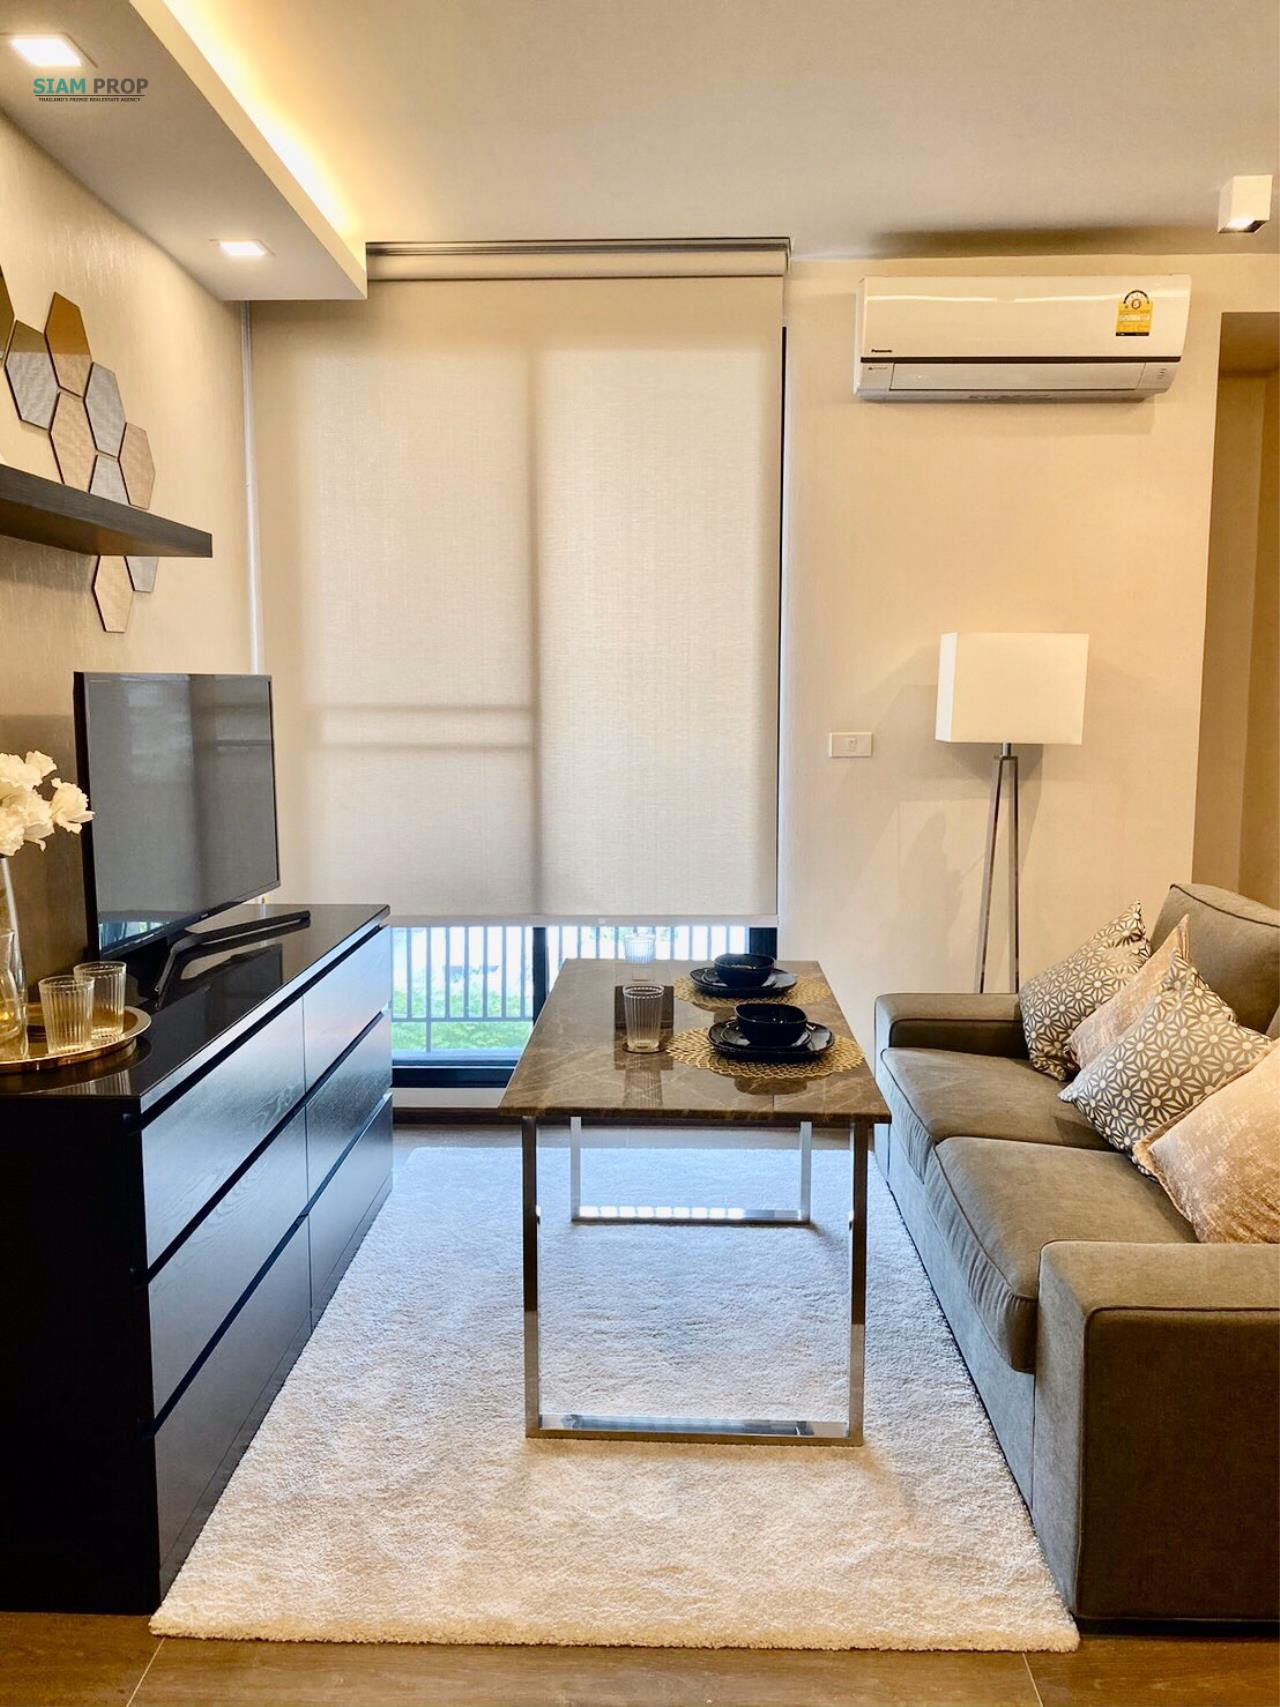 Siam Prop Agency's for rent at The Remarkable, Soi Soonvijai 2 2